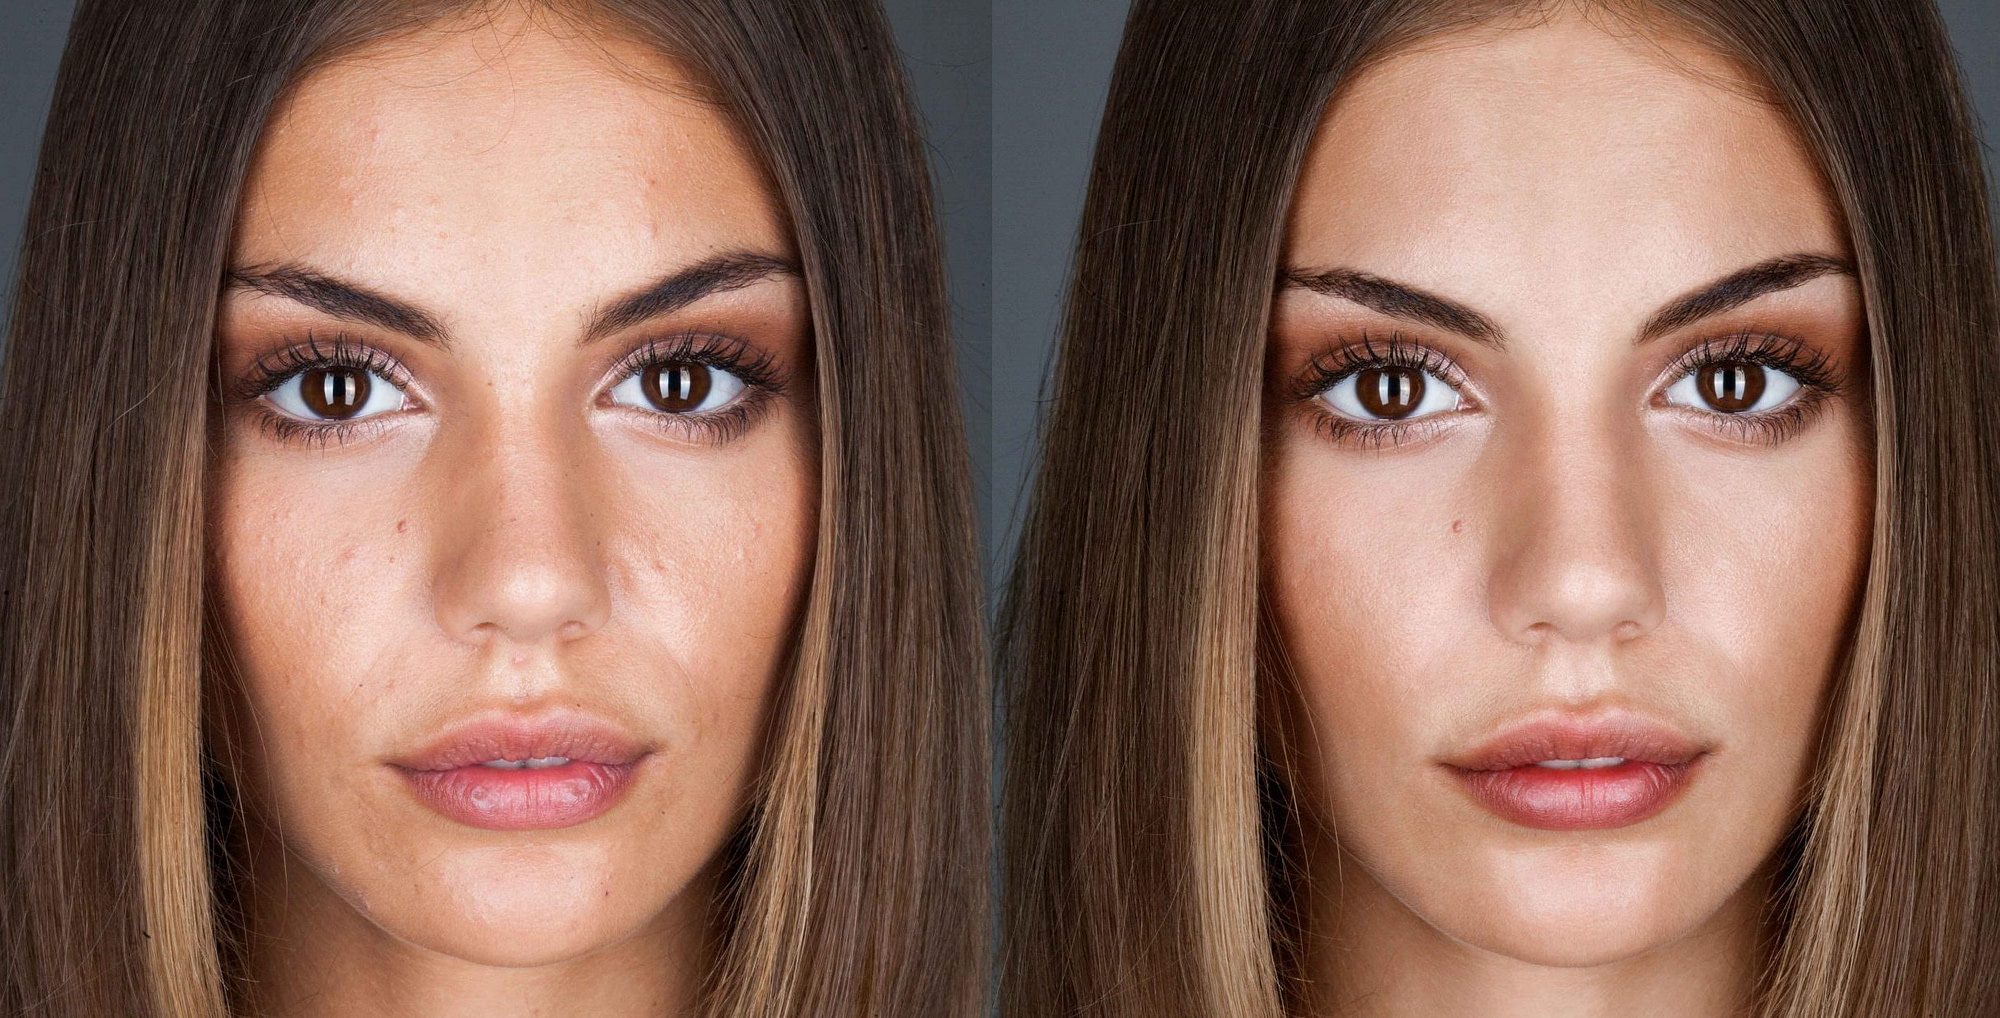 Face And Portrait Retouching